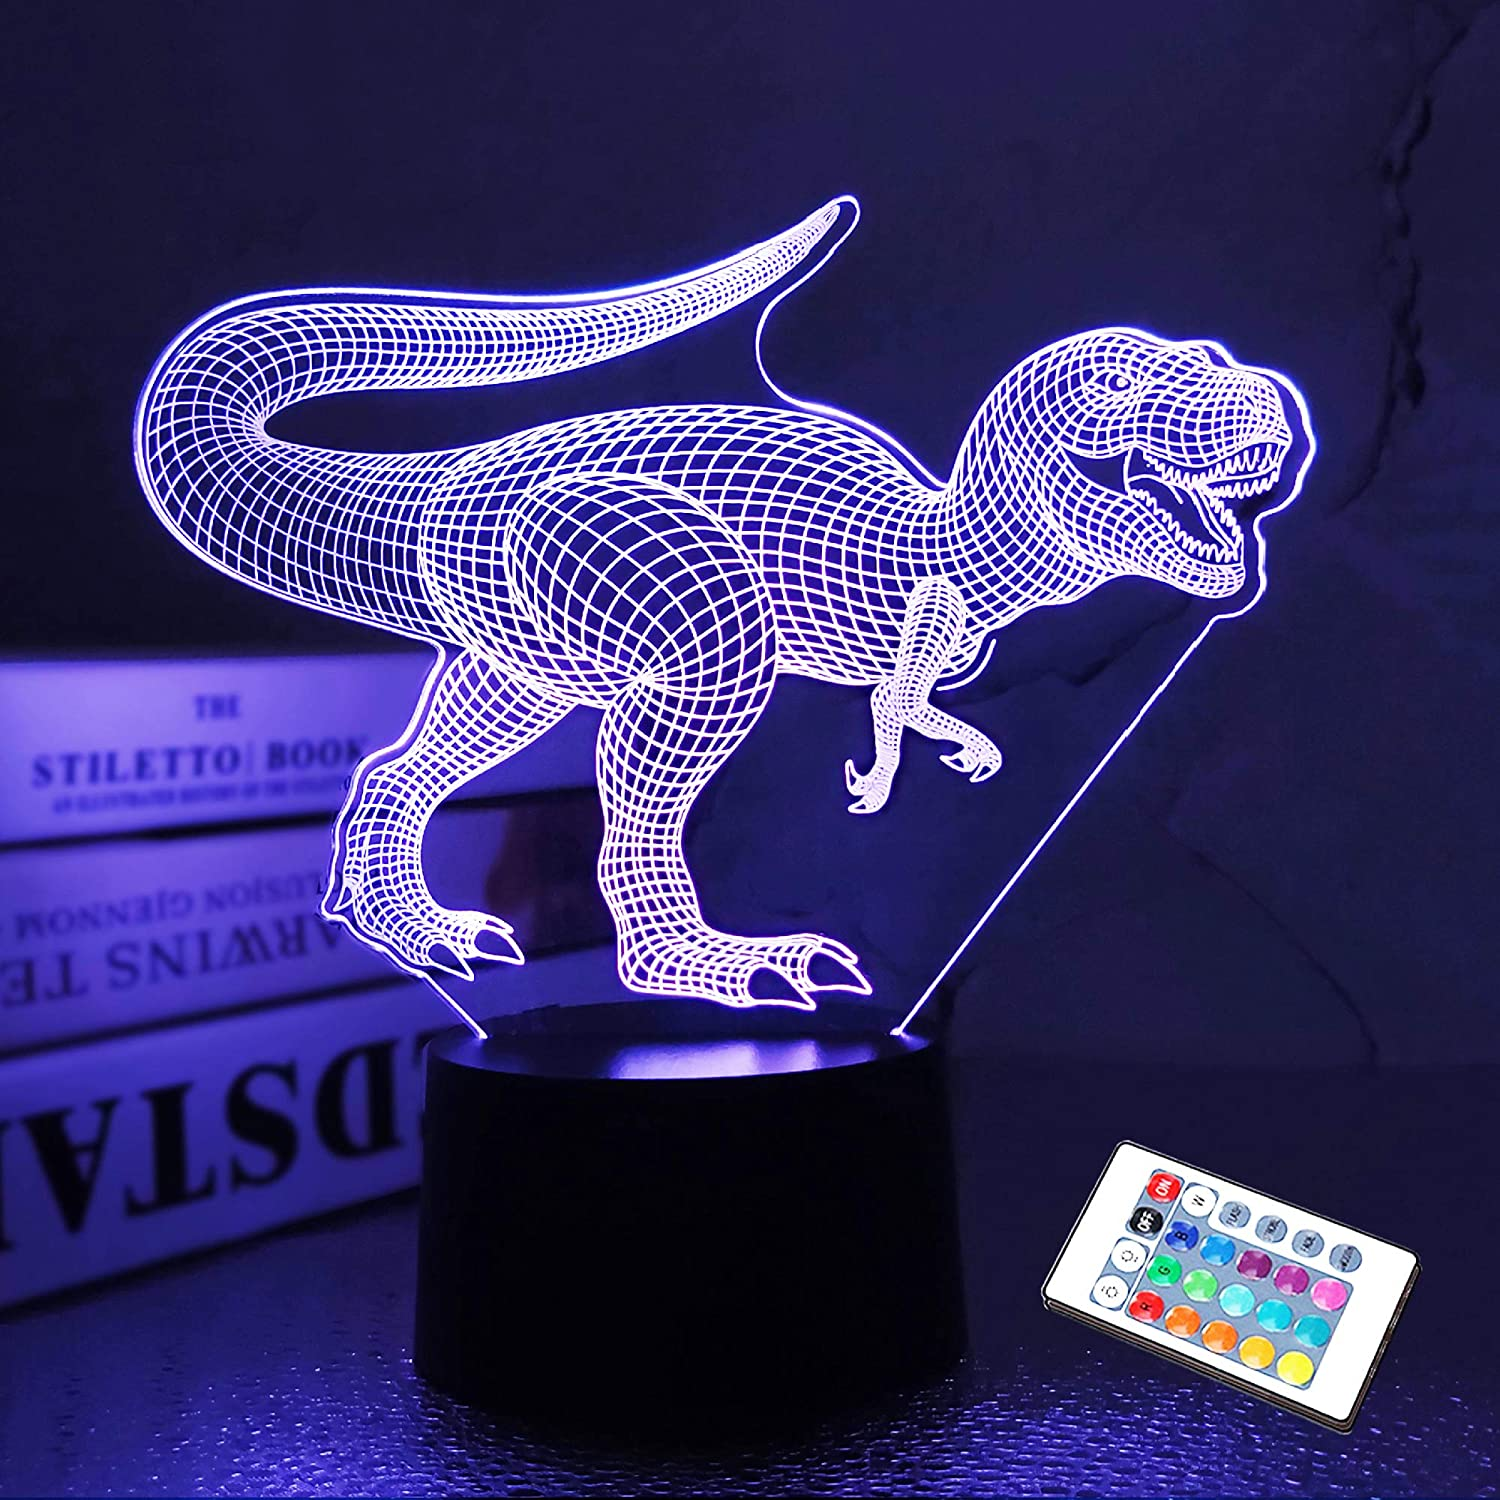 Dinosaur Gift, Dinosaur Night Light Jurassic 3D Illusion Lamp with 16 Colors Change Dimmable Room Decor Xmas Birthday Gifts for Kids Teens Nursery